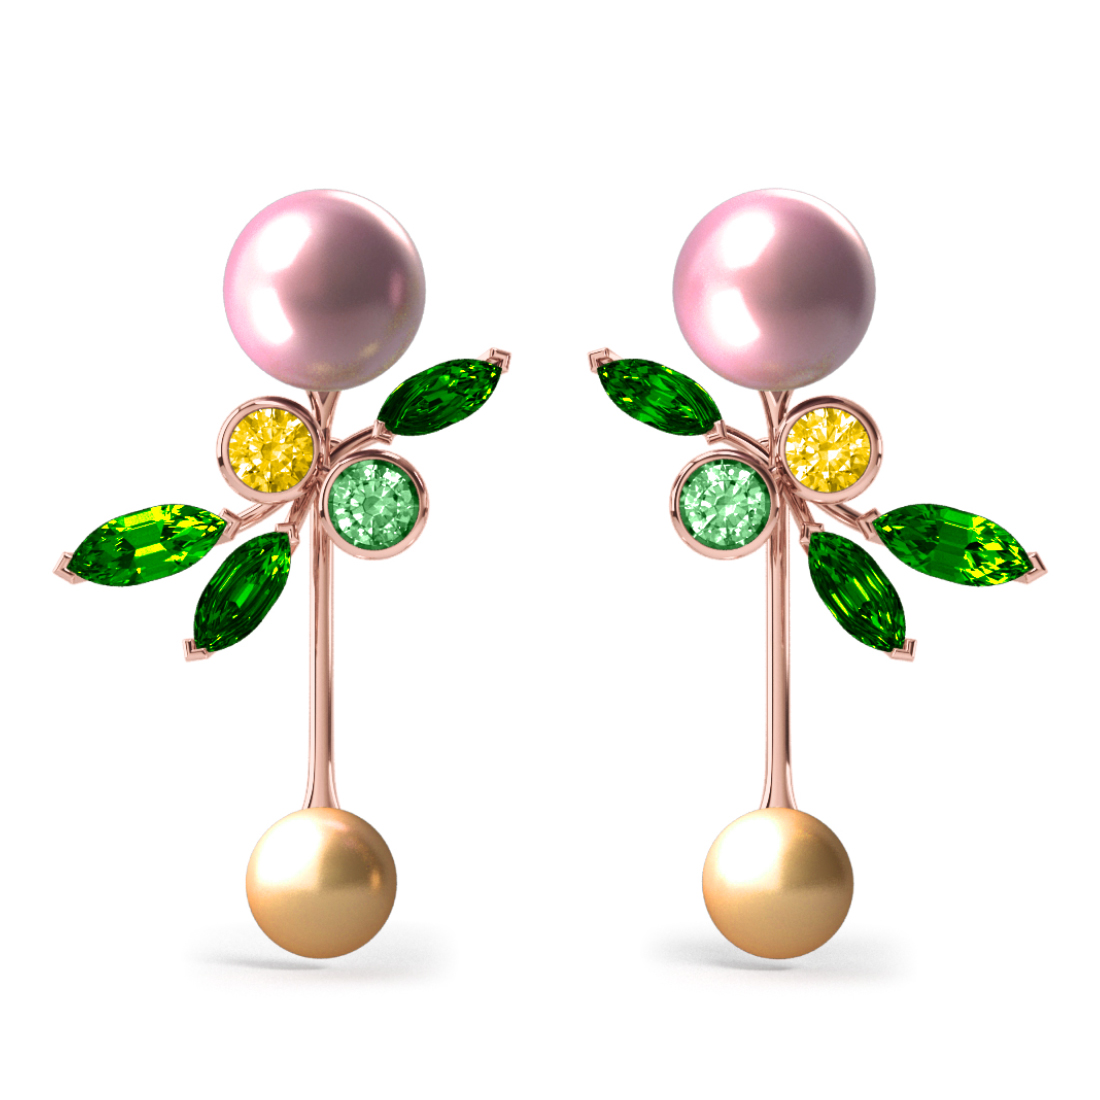 Boucles d'oreilles Pearly Angel Rose & Gold - Saphirs, diamants, tsavorites & perle d'eau douce et des mers du Sud <br /> Or rose 18 carats